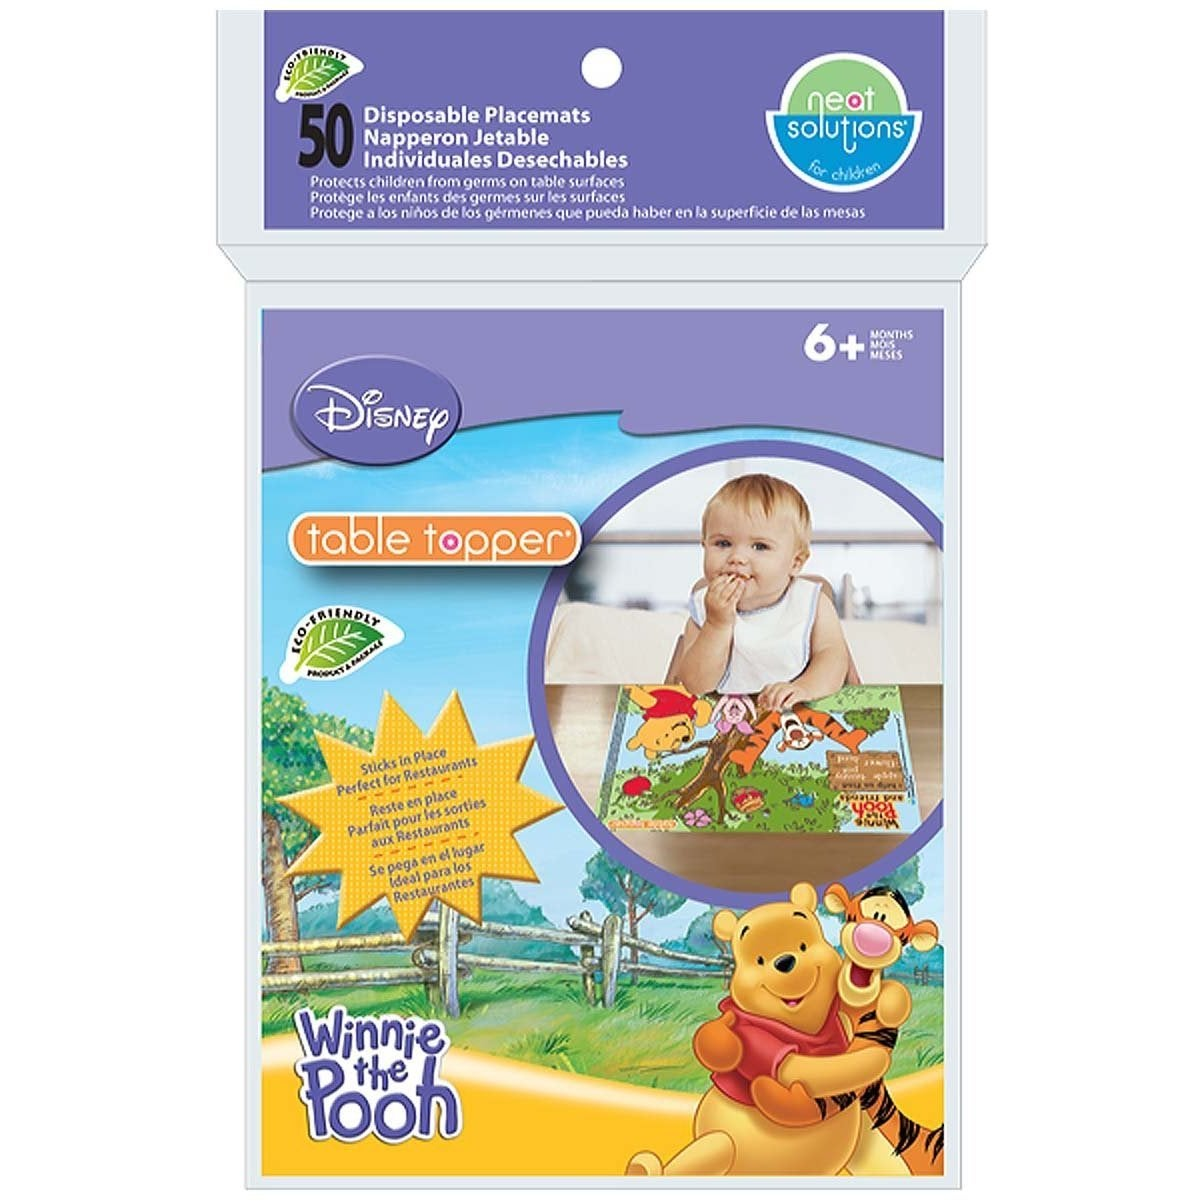 Neat Solutions Winnie The Pooh Table Toppers Disposable P...